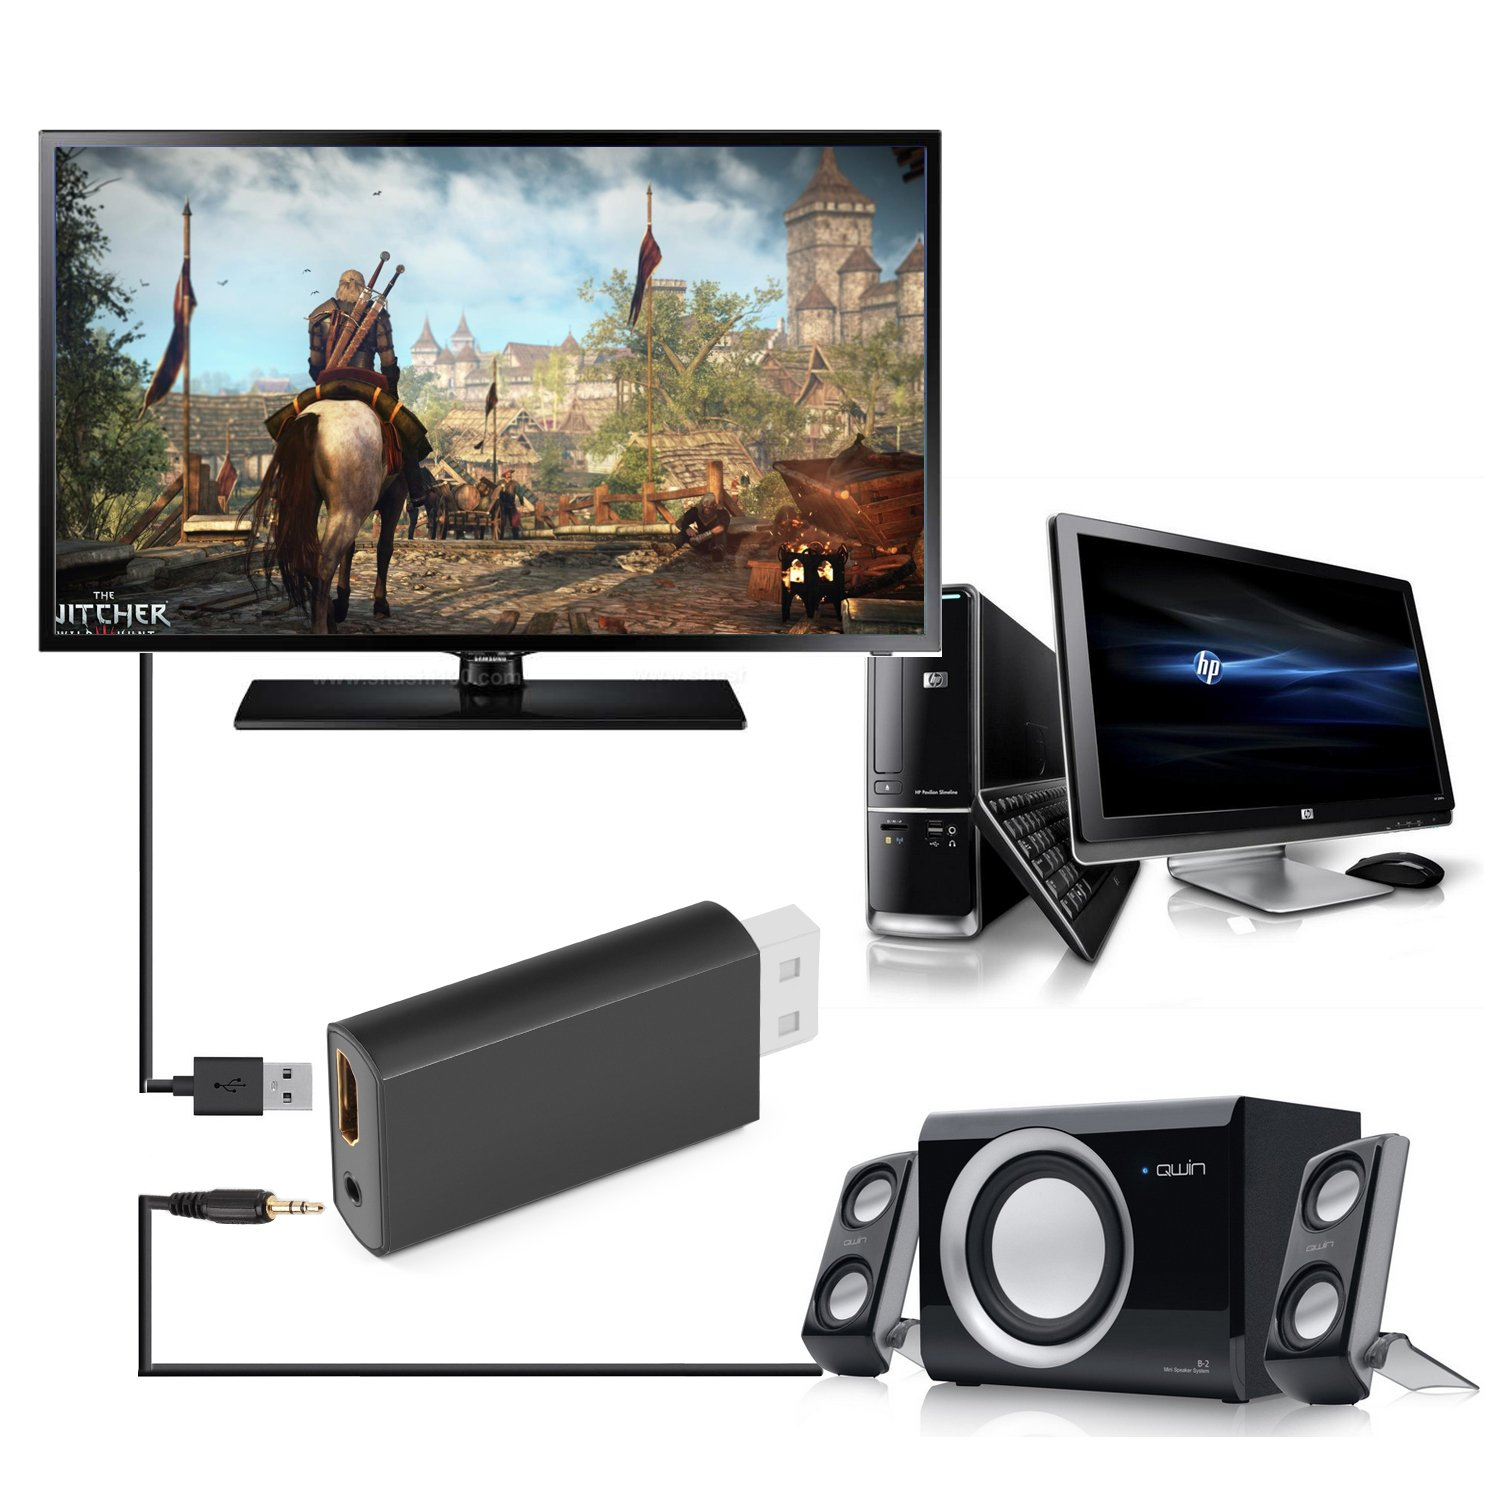 DONGJIAN Wii to HDMI Converter 720P / 1080P HD Output Video Audio Adapter- Supports All Wii Display Modes